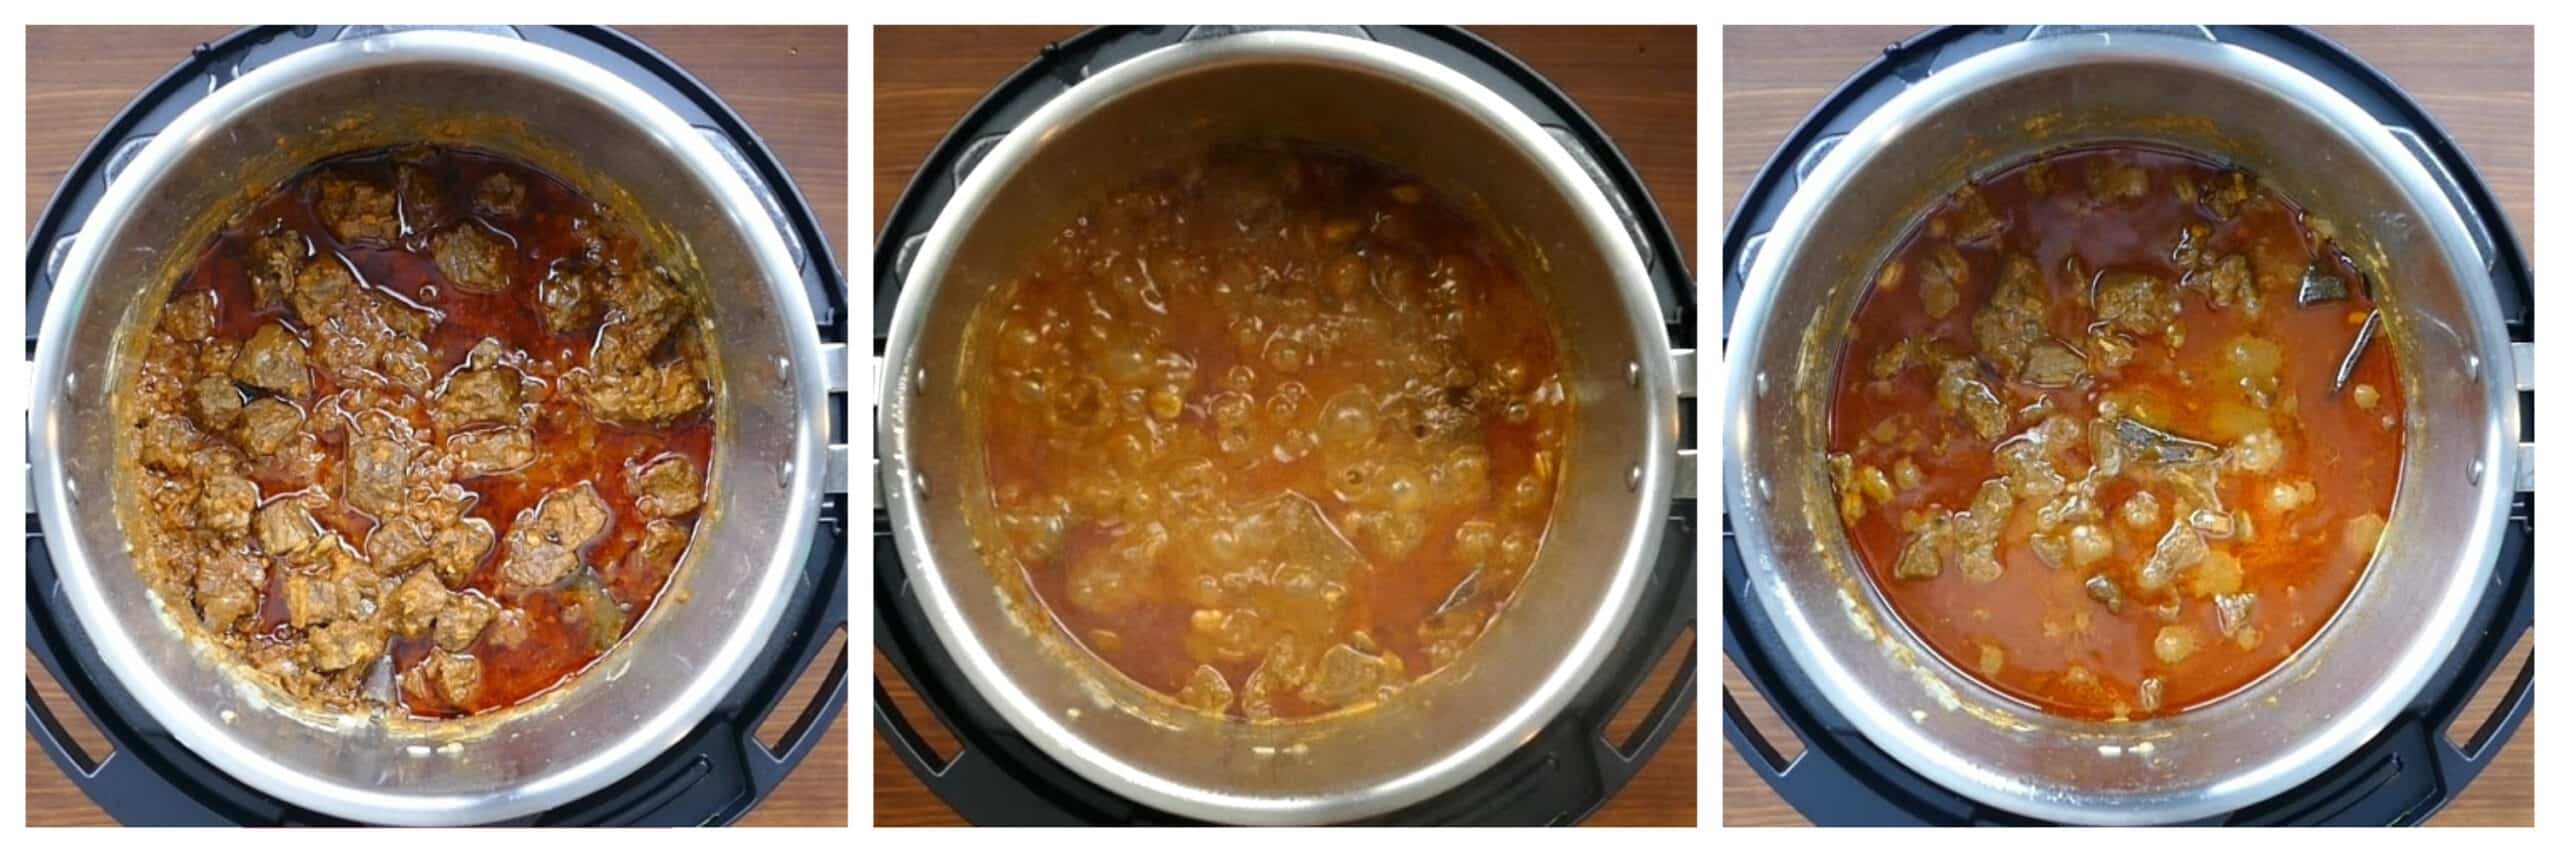 Instant Pot Rogan Josh Instructions collage - cooked curry, boiling, reduced